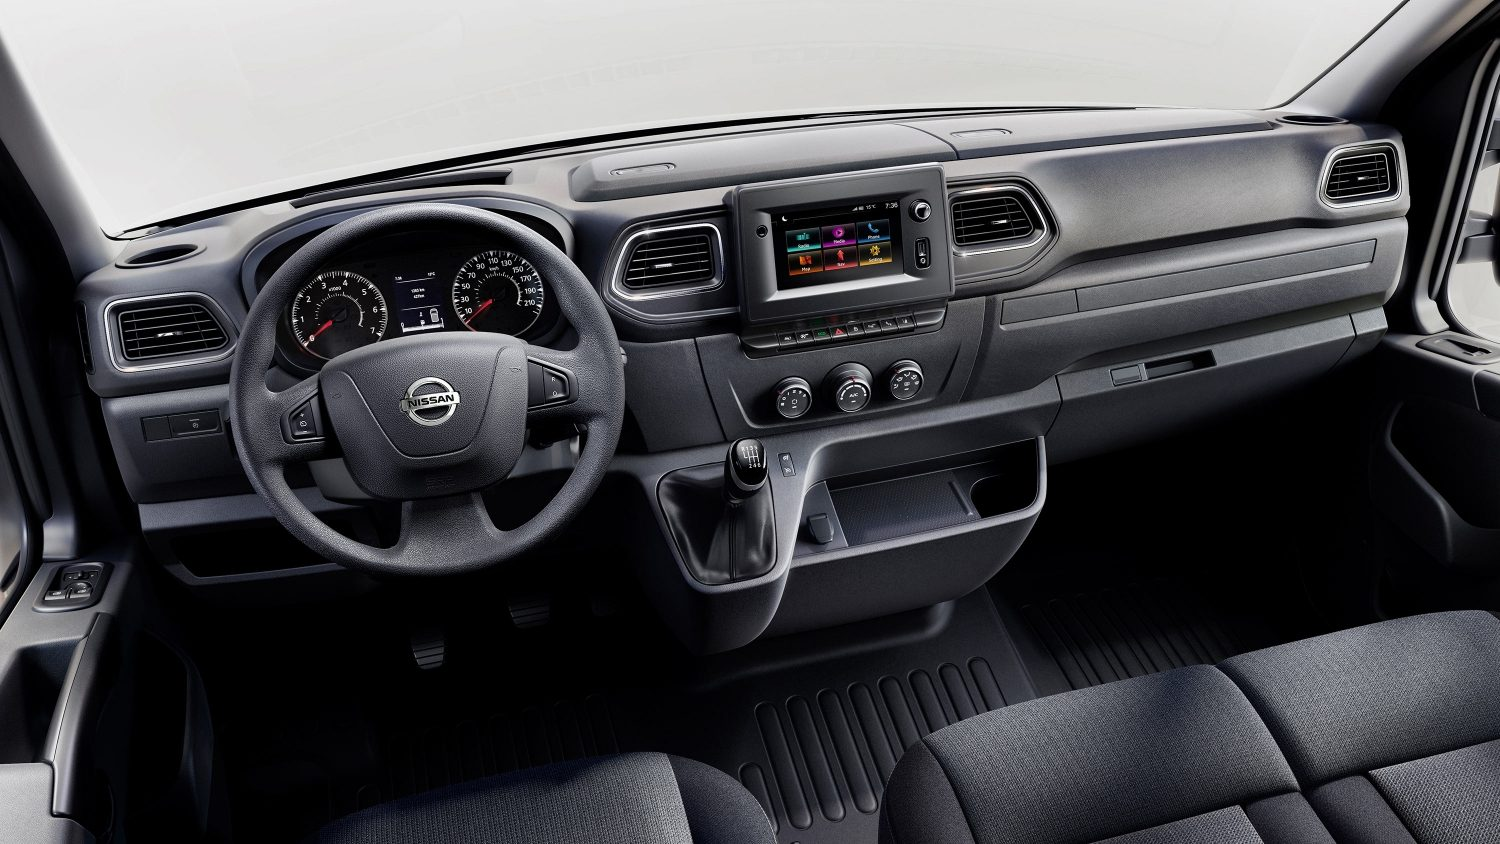 Nissan NV400 - Dashboard view with conductor